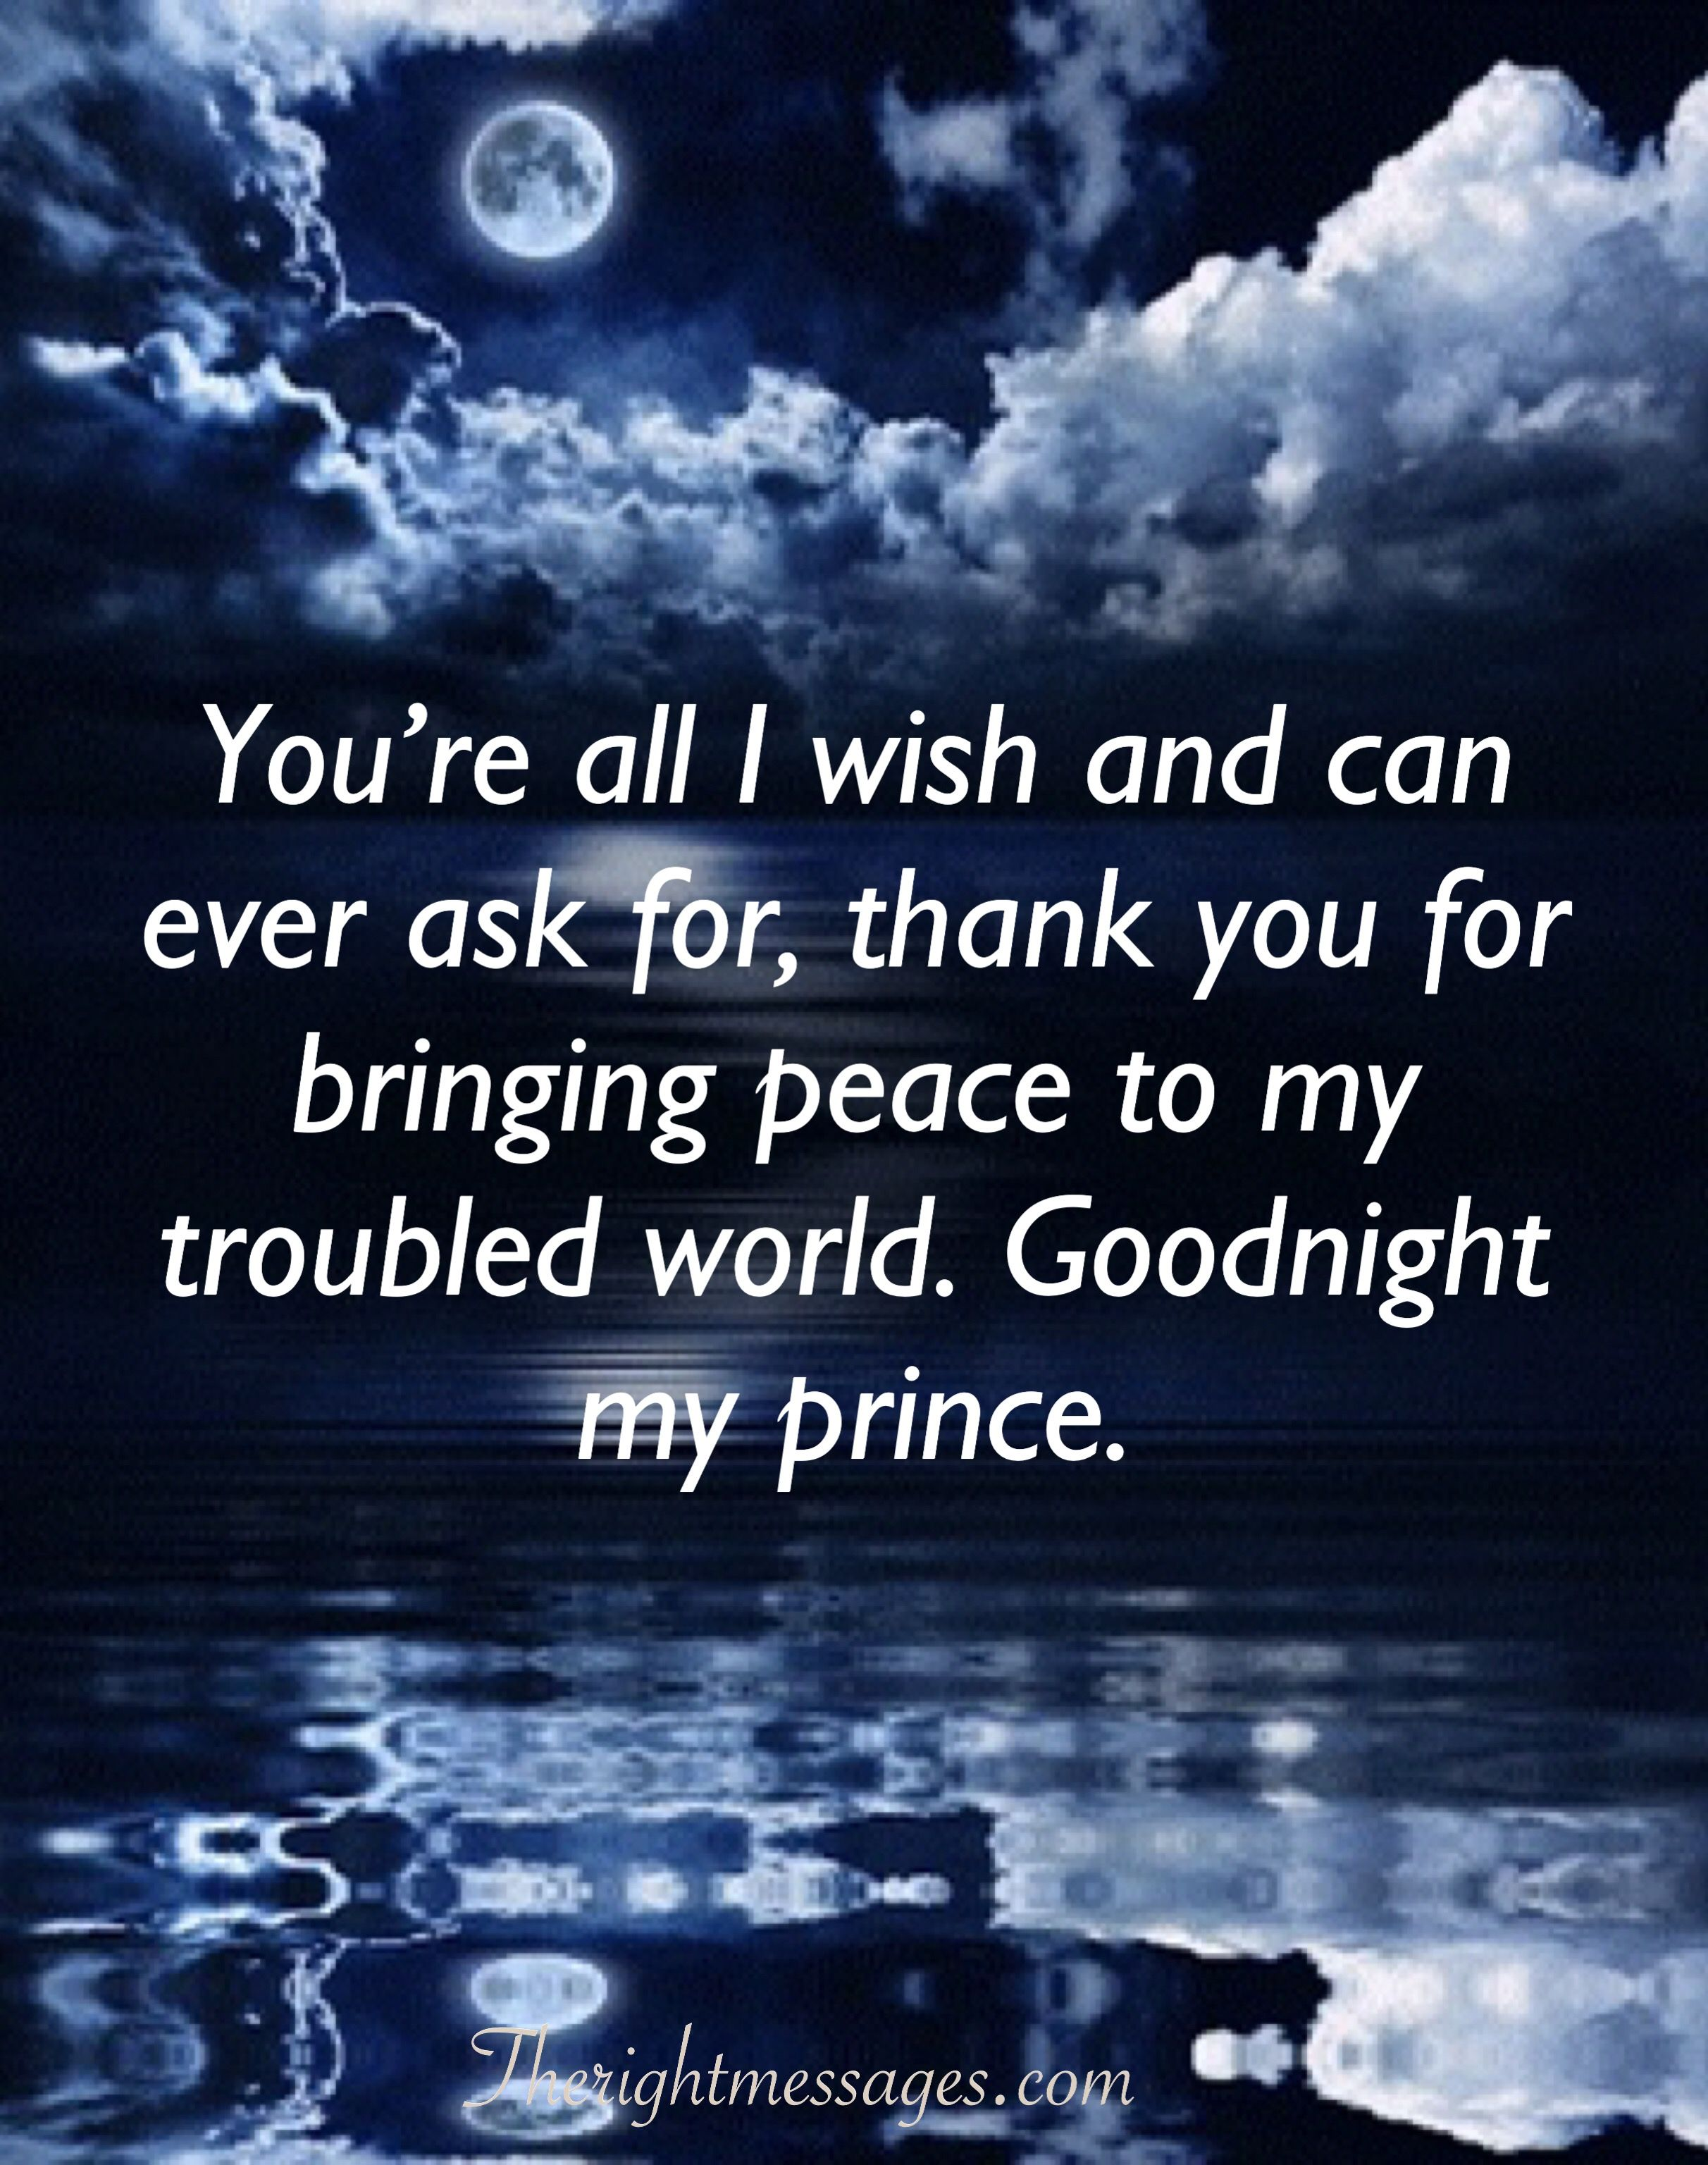 A Sweet Good Night Message For Him Pinterest thumbnail